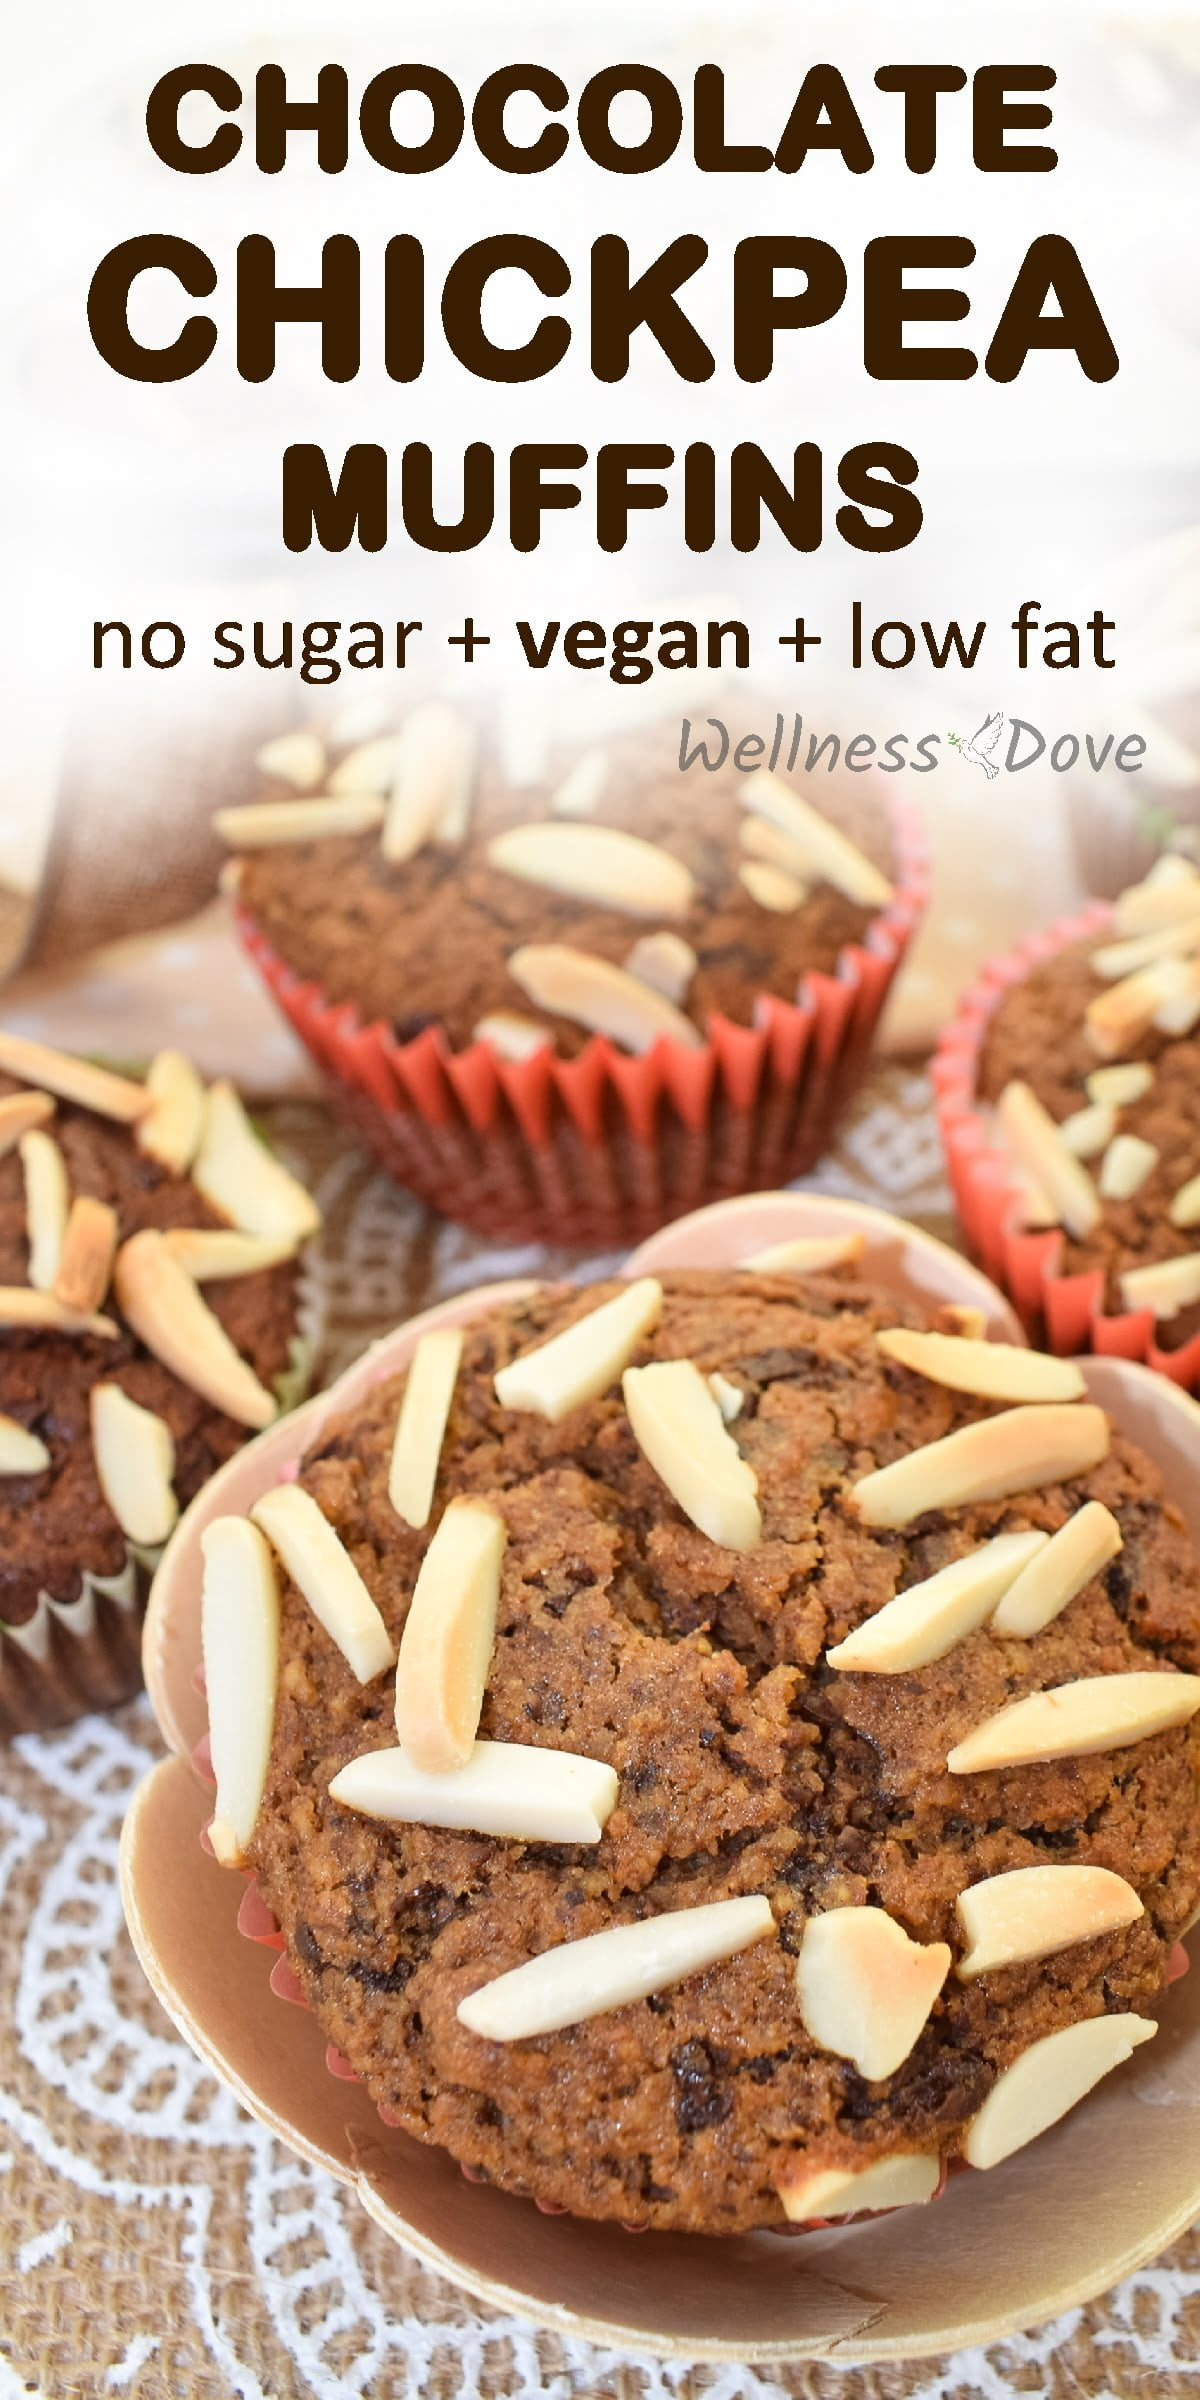 Super tasty muffins that you cannot believe have no sugar and practically not oil! With raw cacao beans that give such an enticing aroma to them. These muffins make a healthy snack or breakfast for any time of the day. Enjoy them guilt-free!